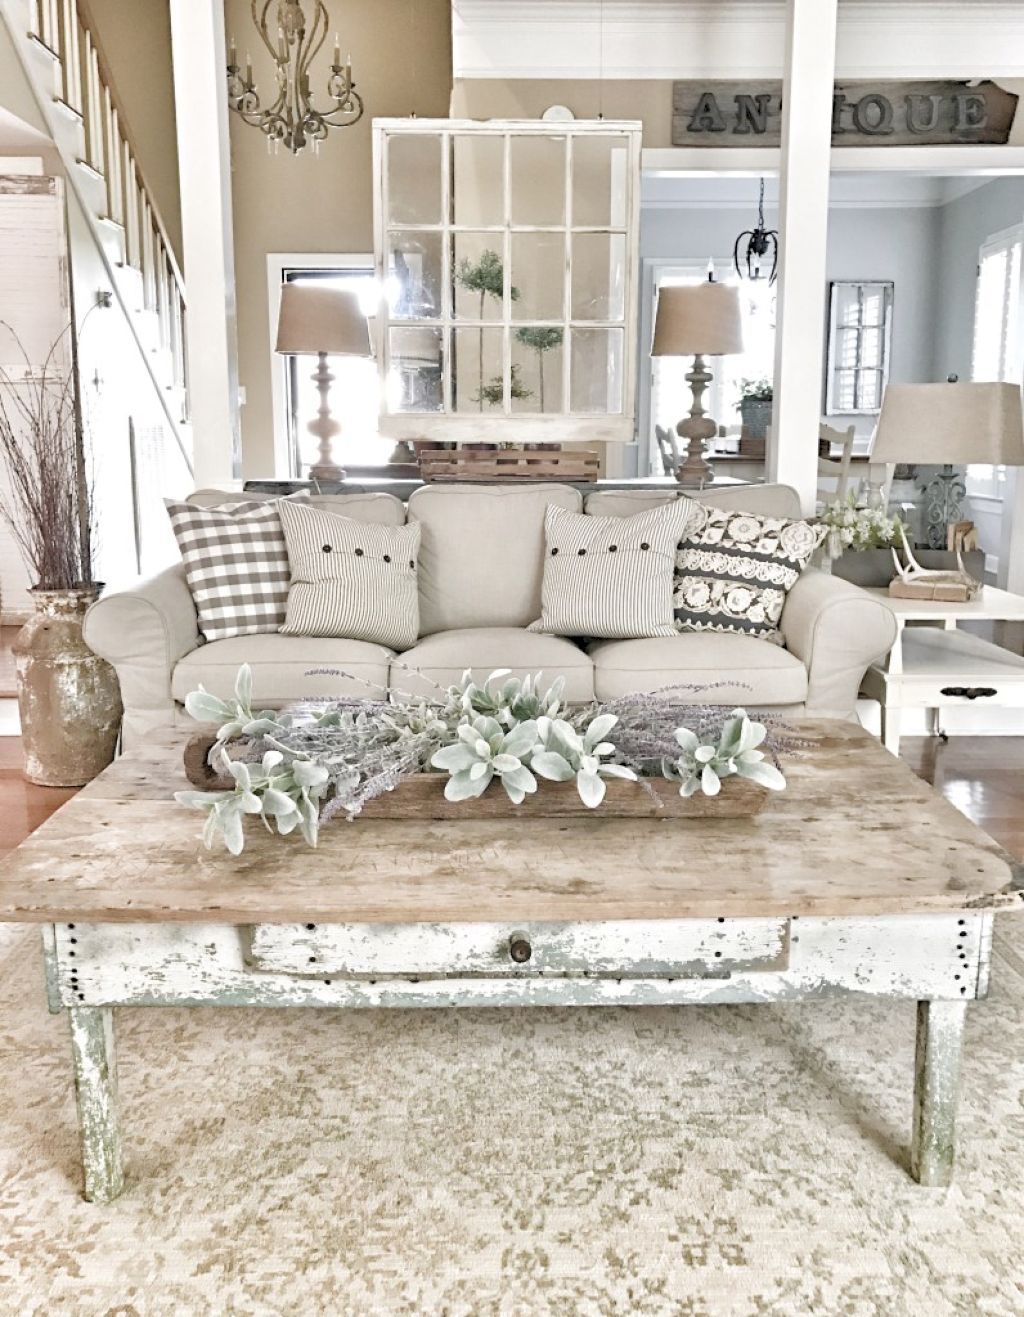 Modern farmhouse living room decor and design ideas 3 for Wohnzimmer modern